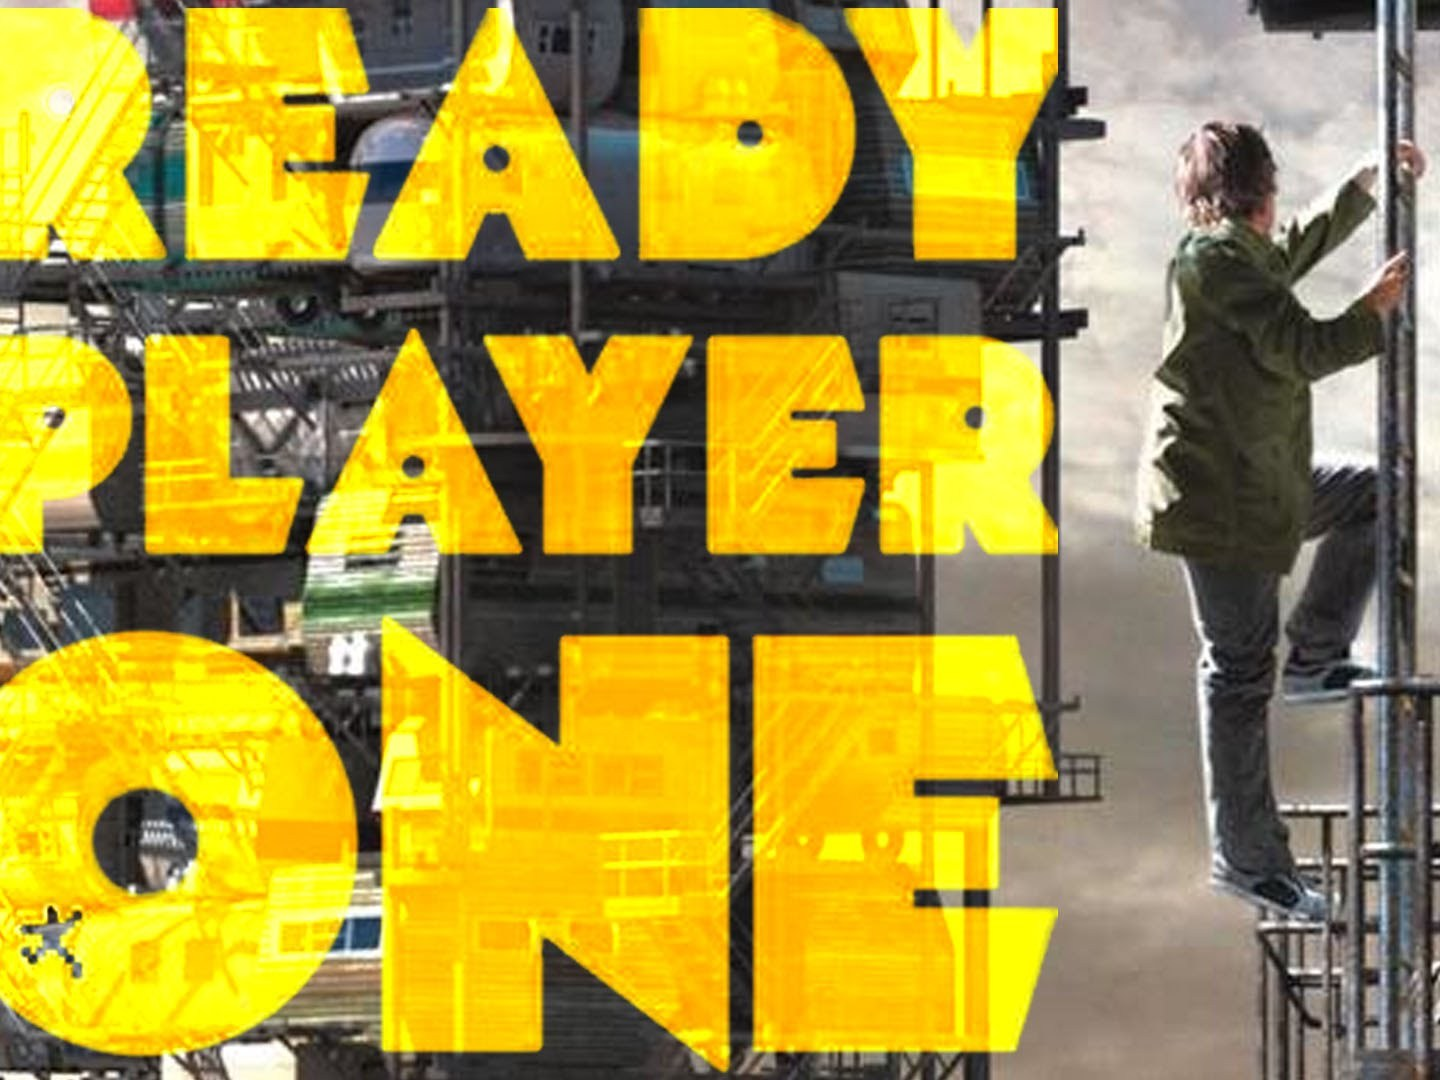 READY PLAYER ONE Comic-Con Trailer #1